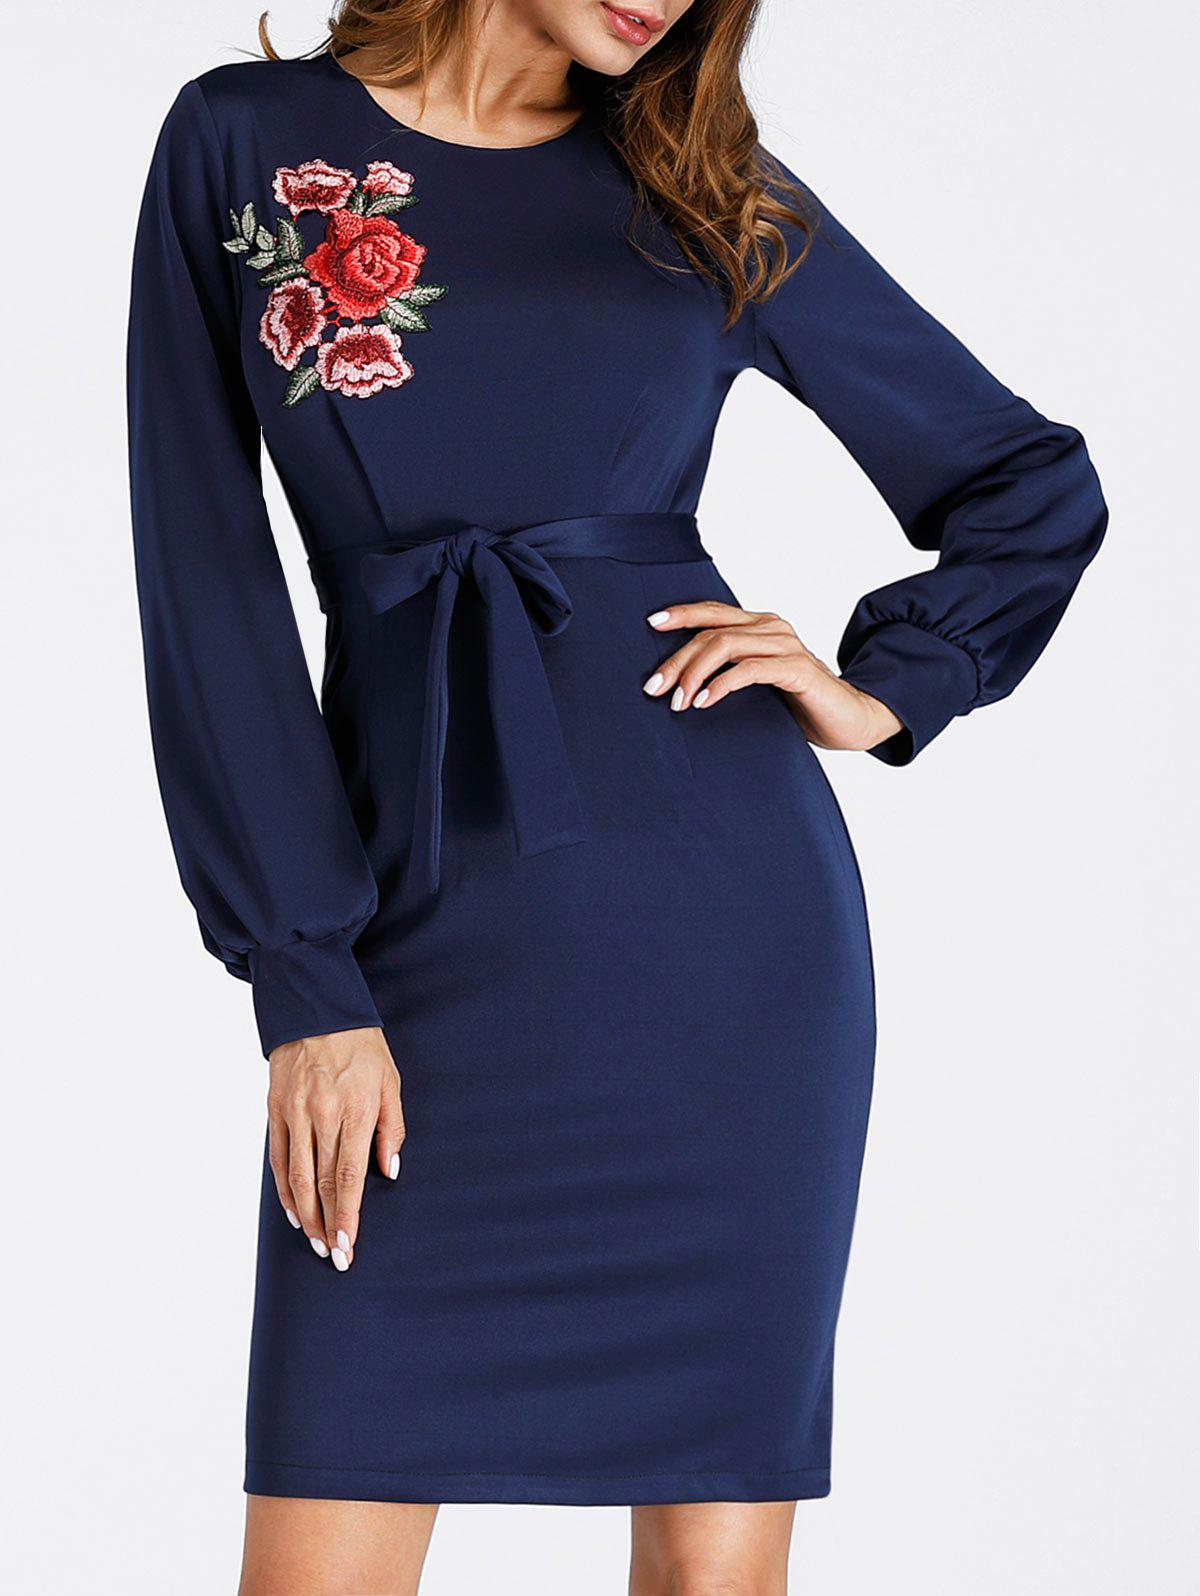 Puff Sleeve Embroidered Mini Bodycon Dress 237297504